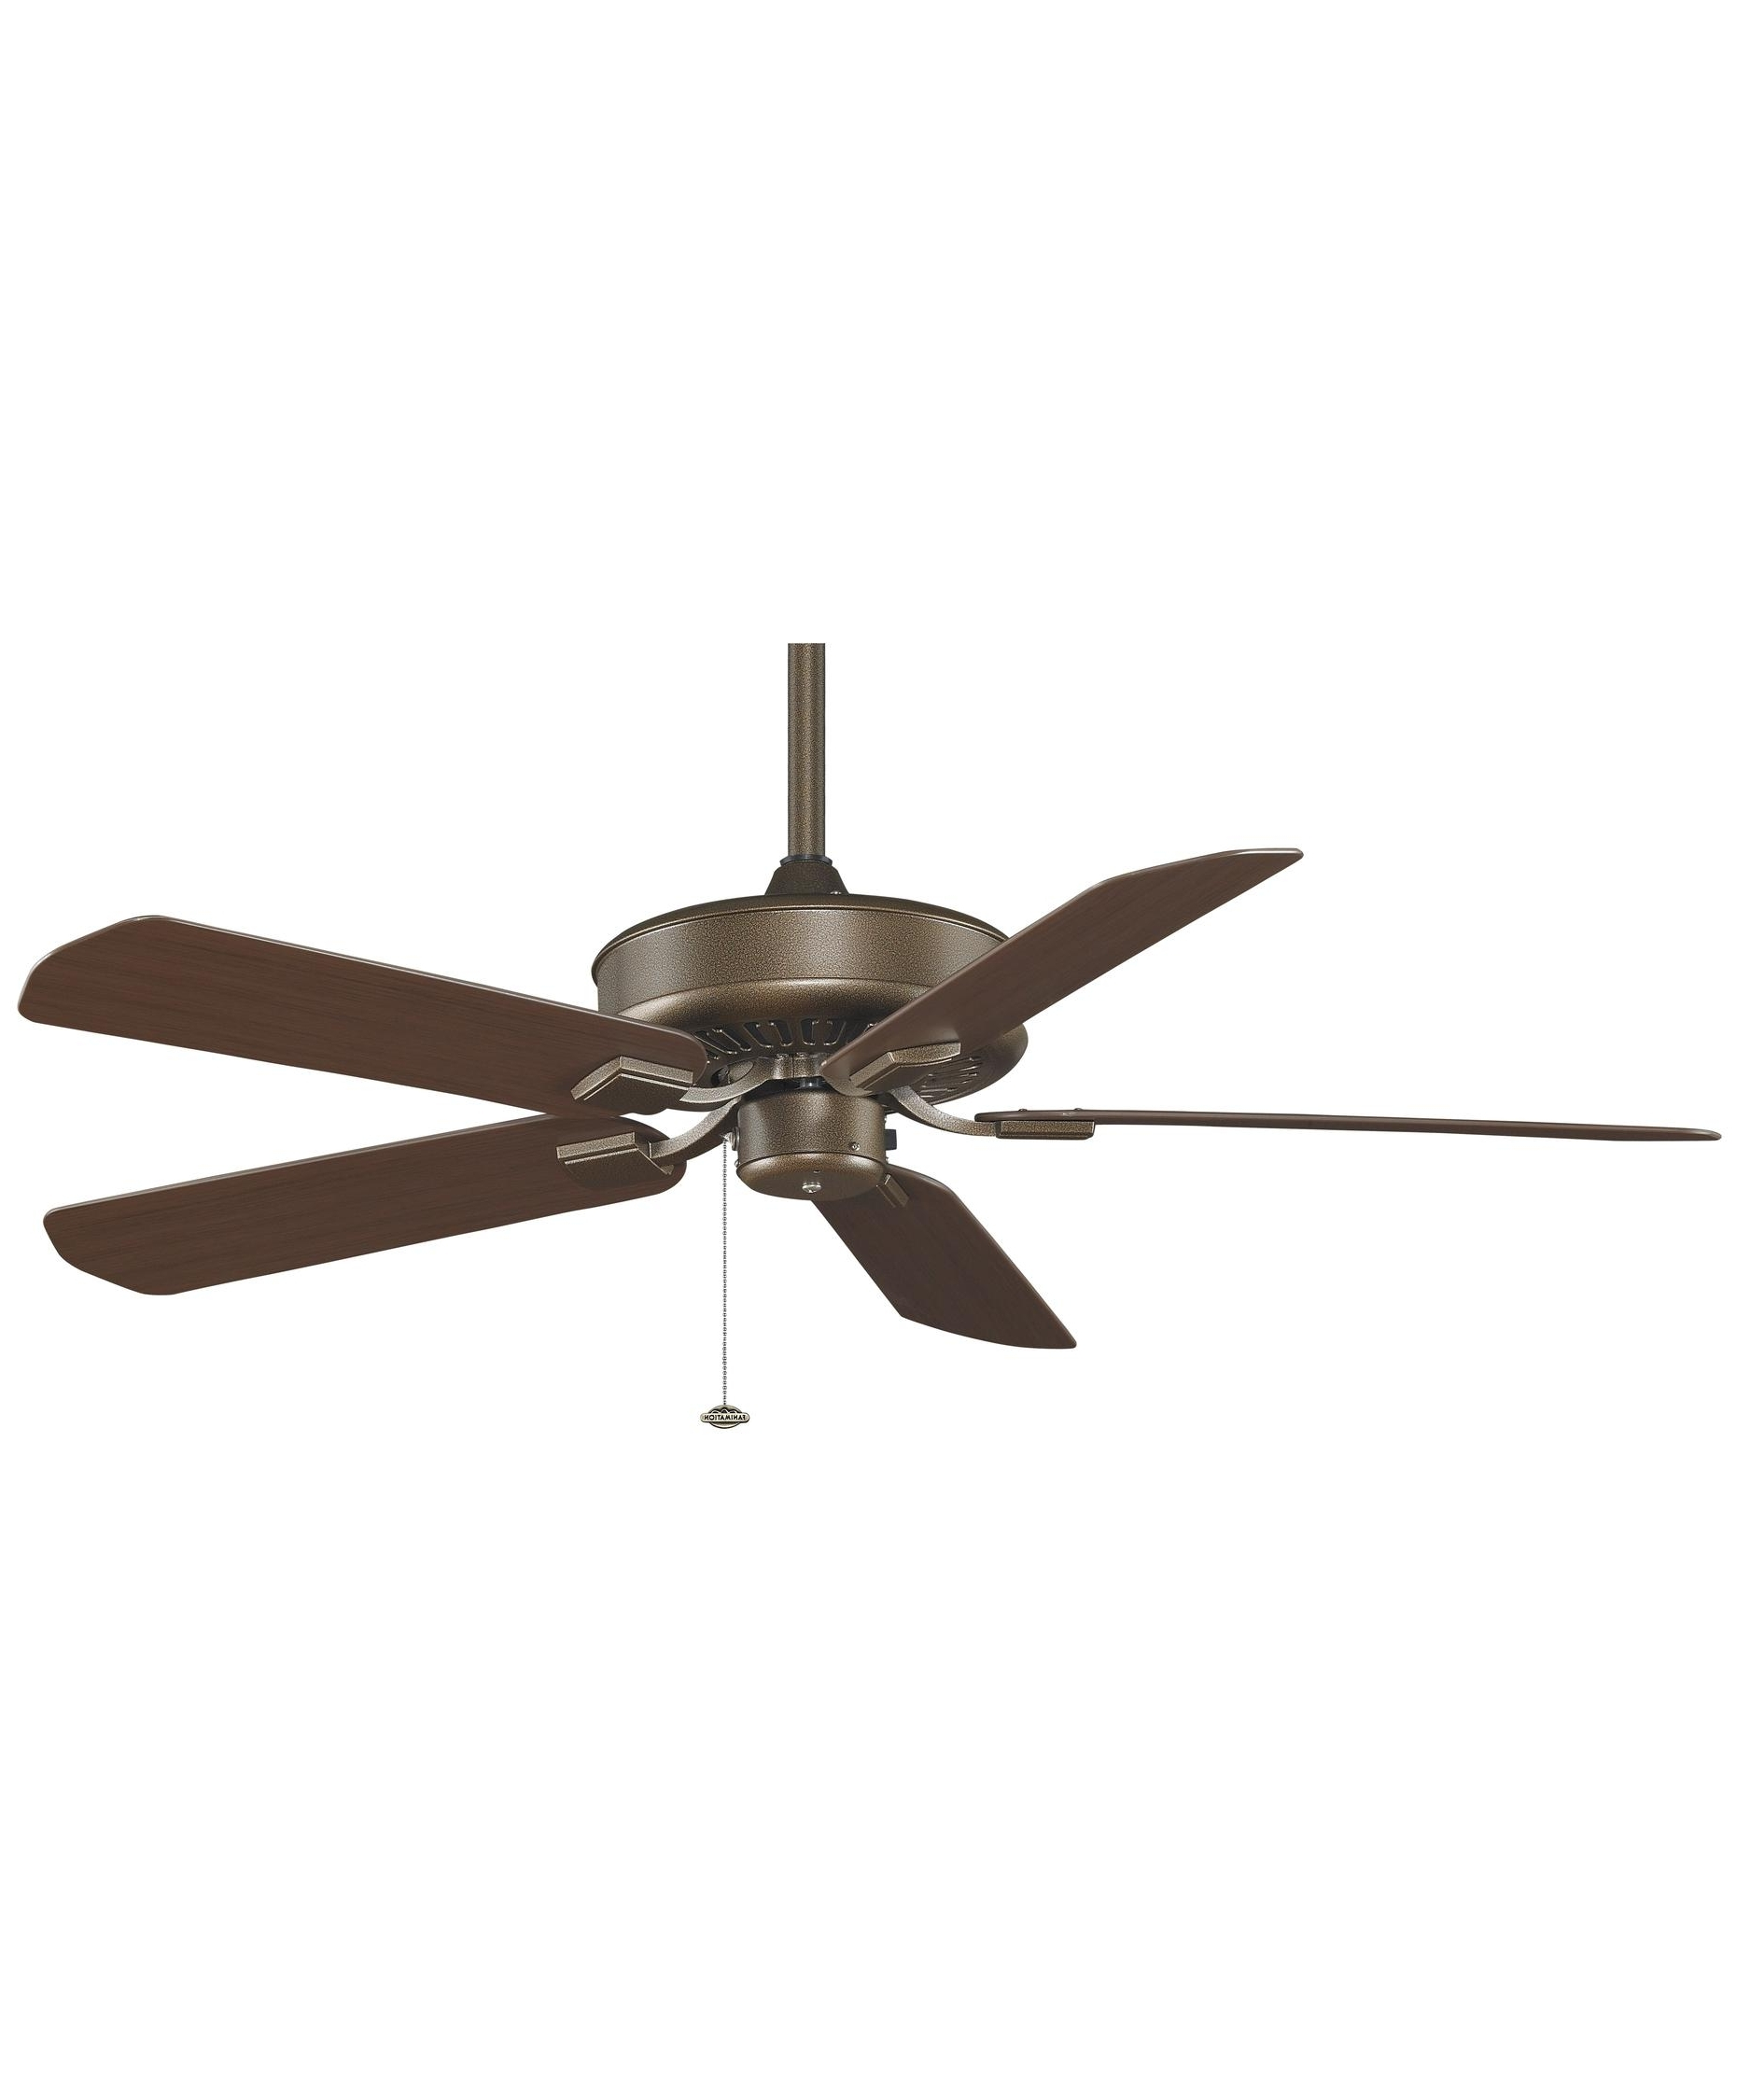 Outdoor Ceiling Fans For Wet Locations In Favorite Fanimation Tf910 Edgewood 50 Inch 5 Blade Ceiling Fan (View 10 of 20)